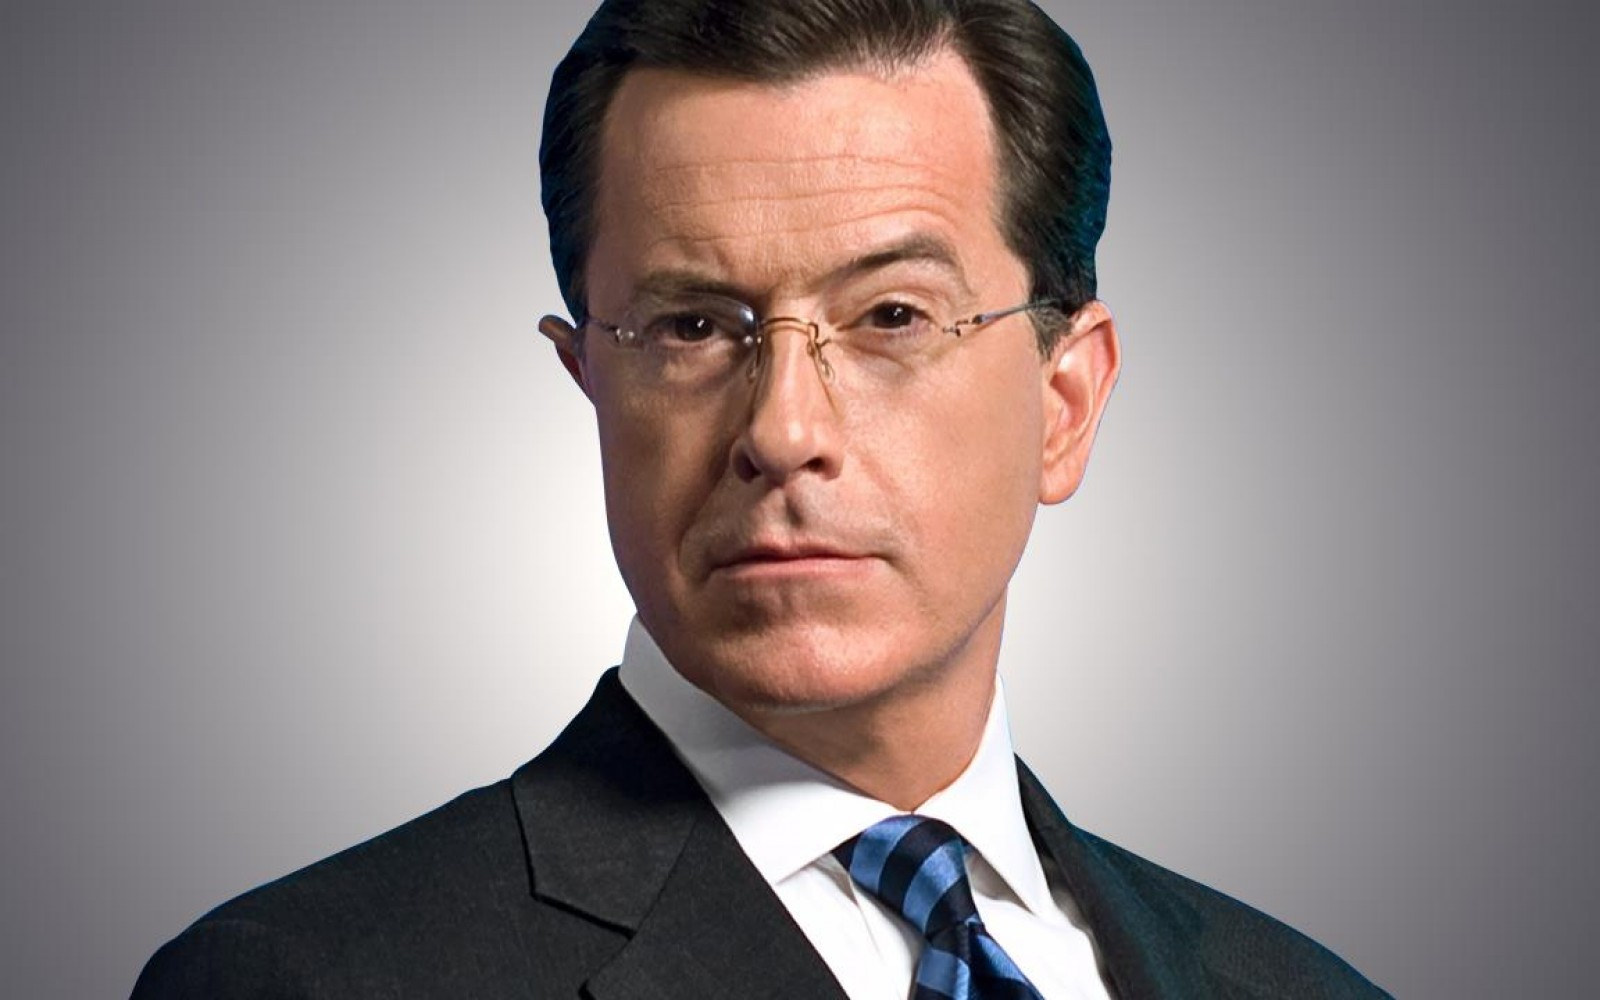 50 Times Stephen Colbert Said What We All Were Thinking